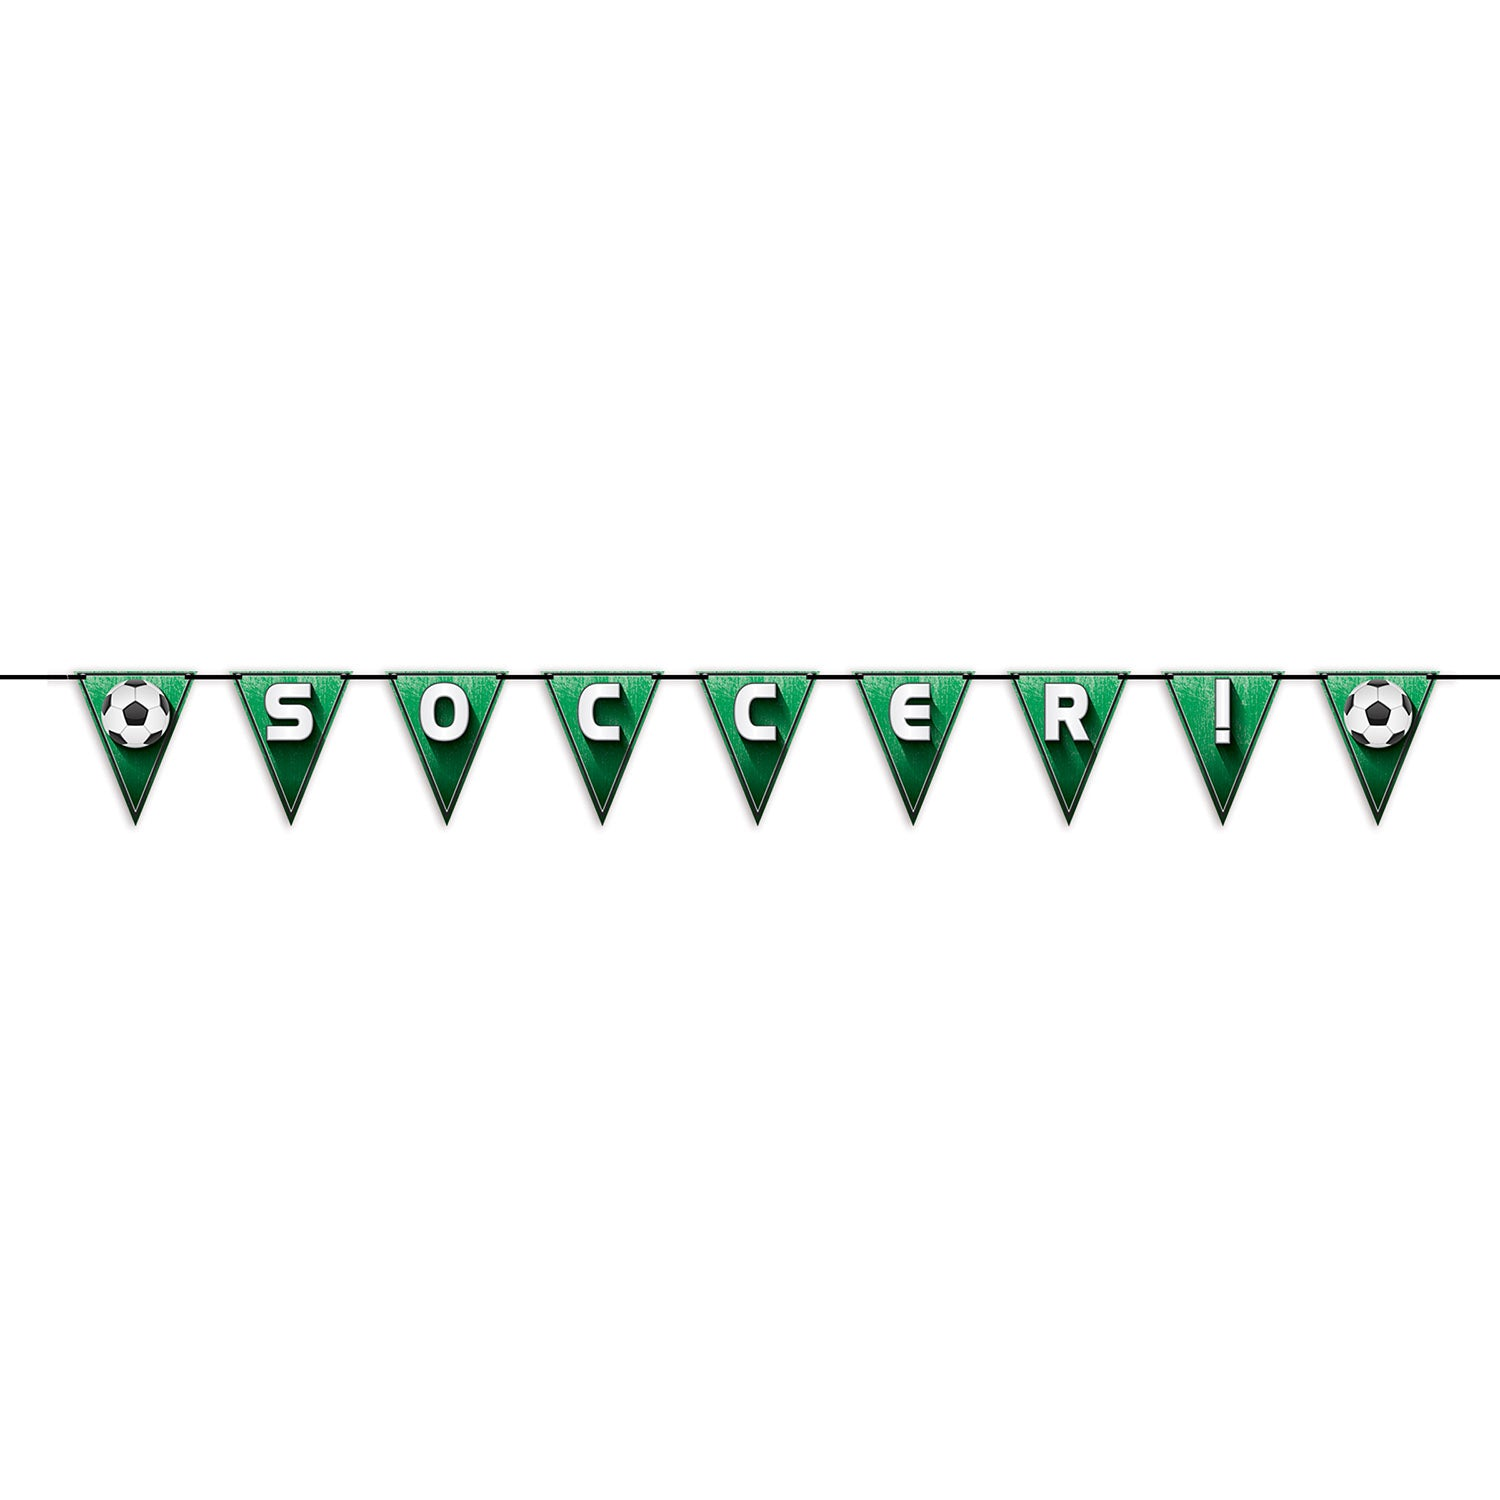 Soccer!/Football Pennant Streamer by Beistle - Soccer Theme Decorations